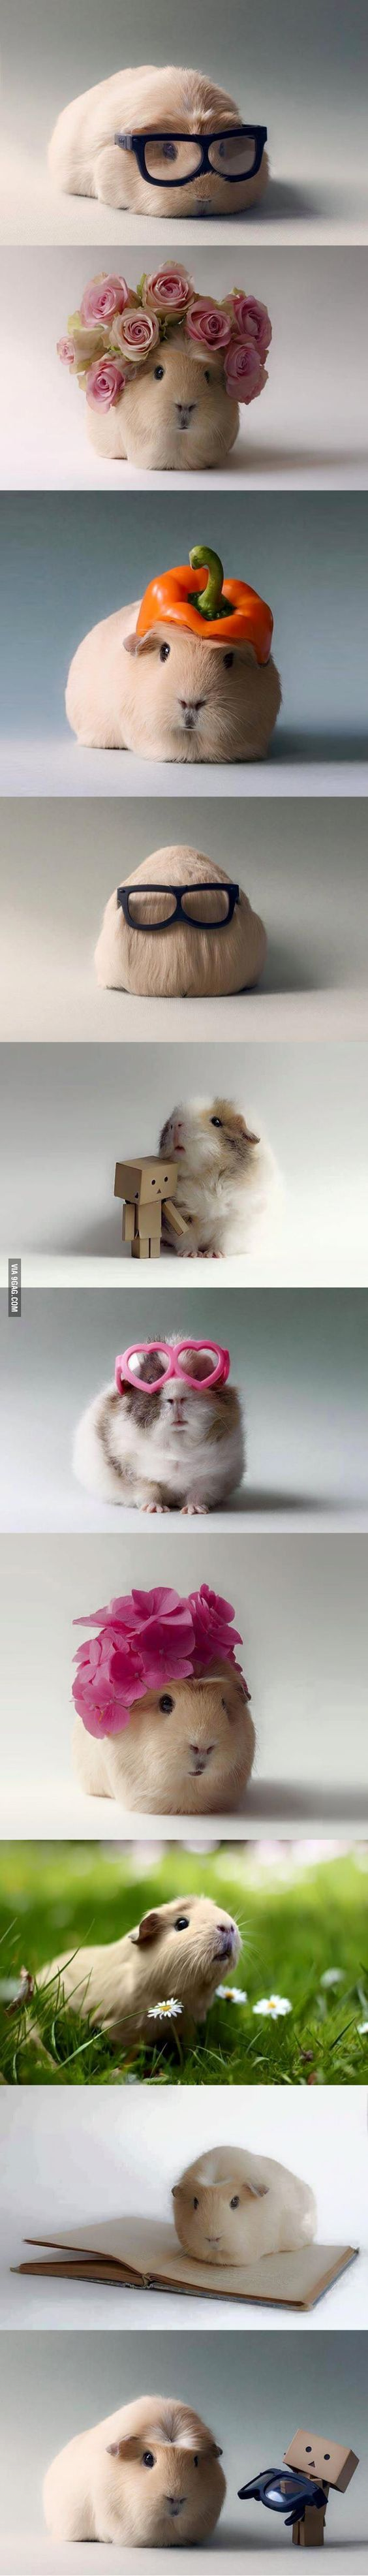 piggies with things on their heads! Having a bad day? These floofs will help you cheer up!